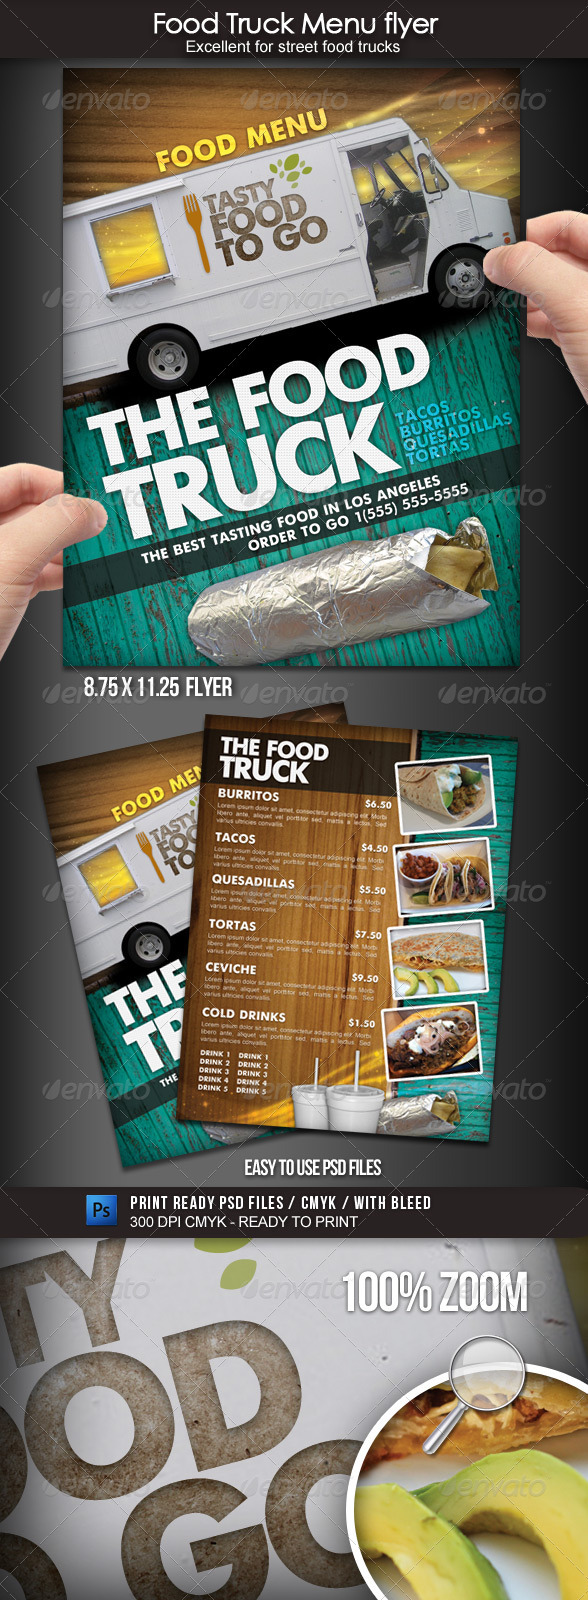 foodtruck-preview